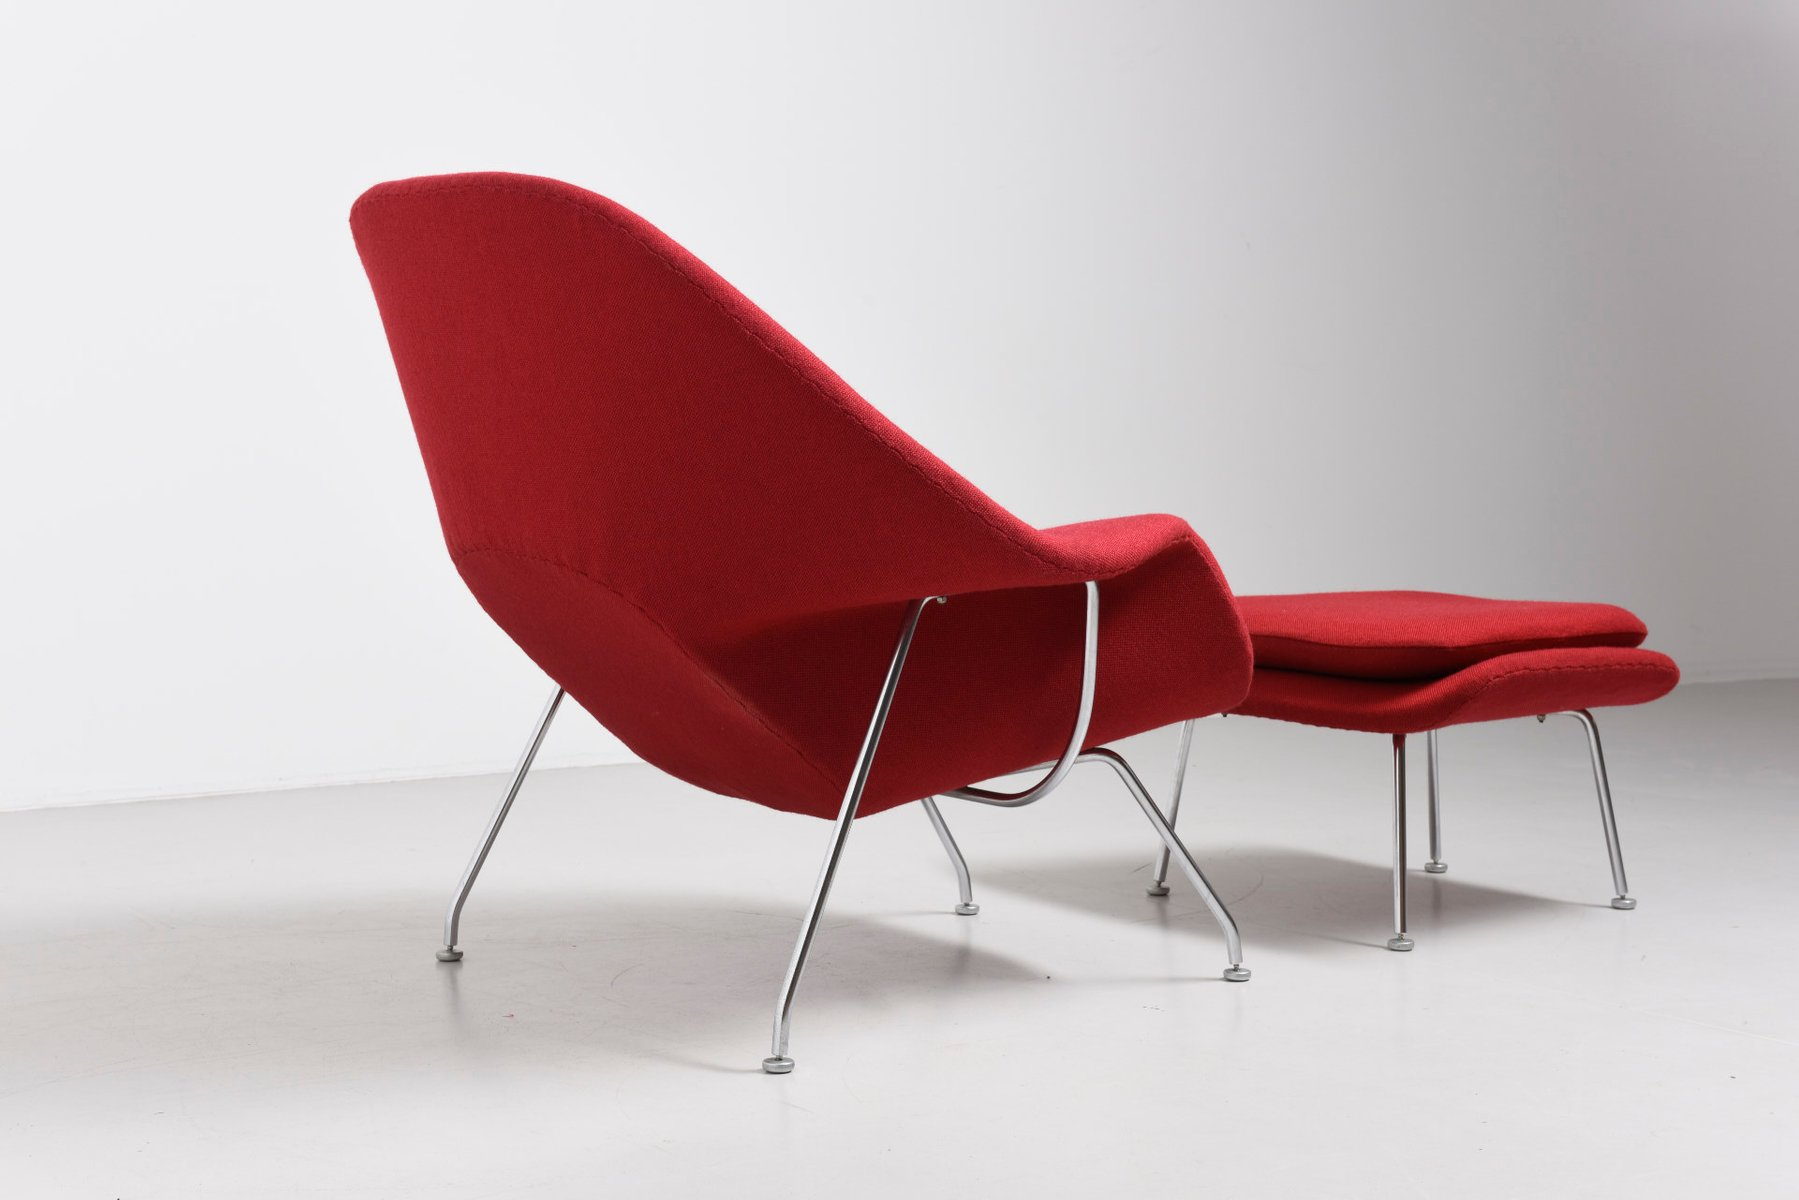 Vintage Womb Chair with Ottoman by Eero Saarinen for Knoll for .